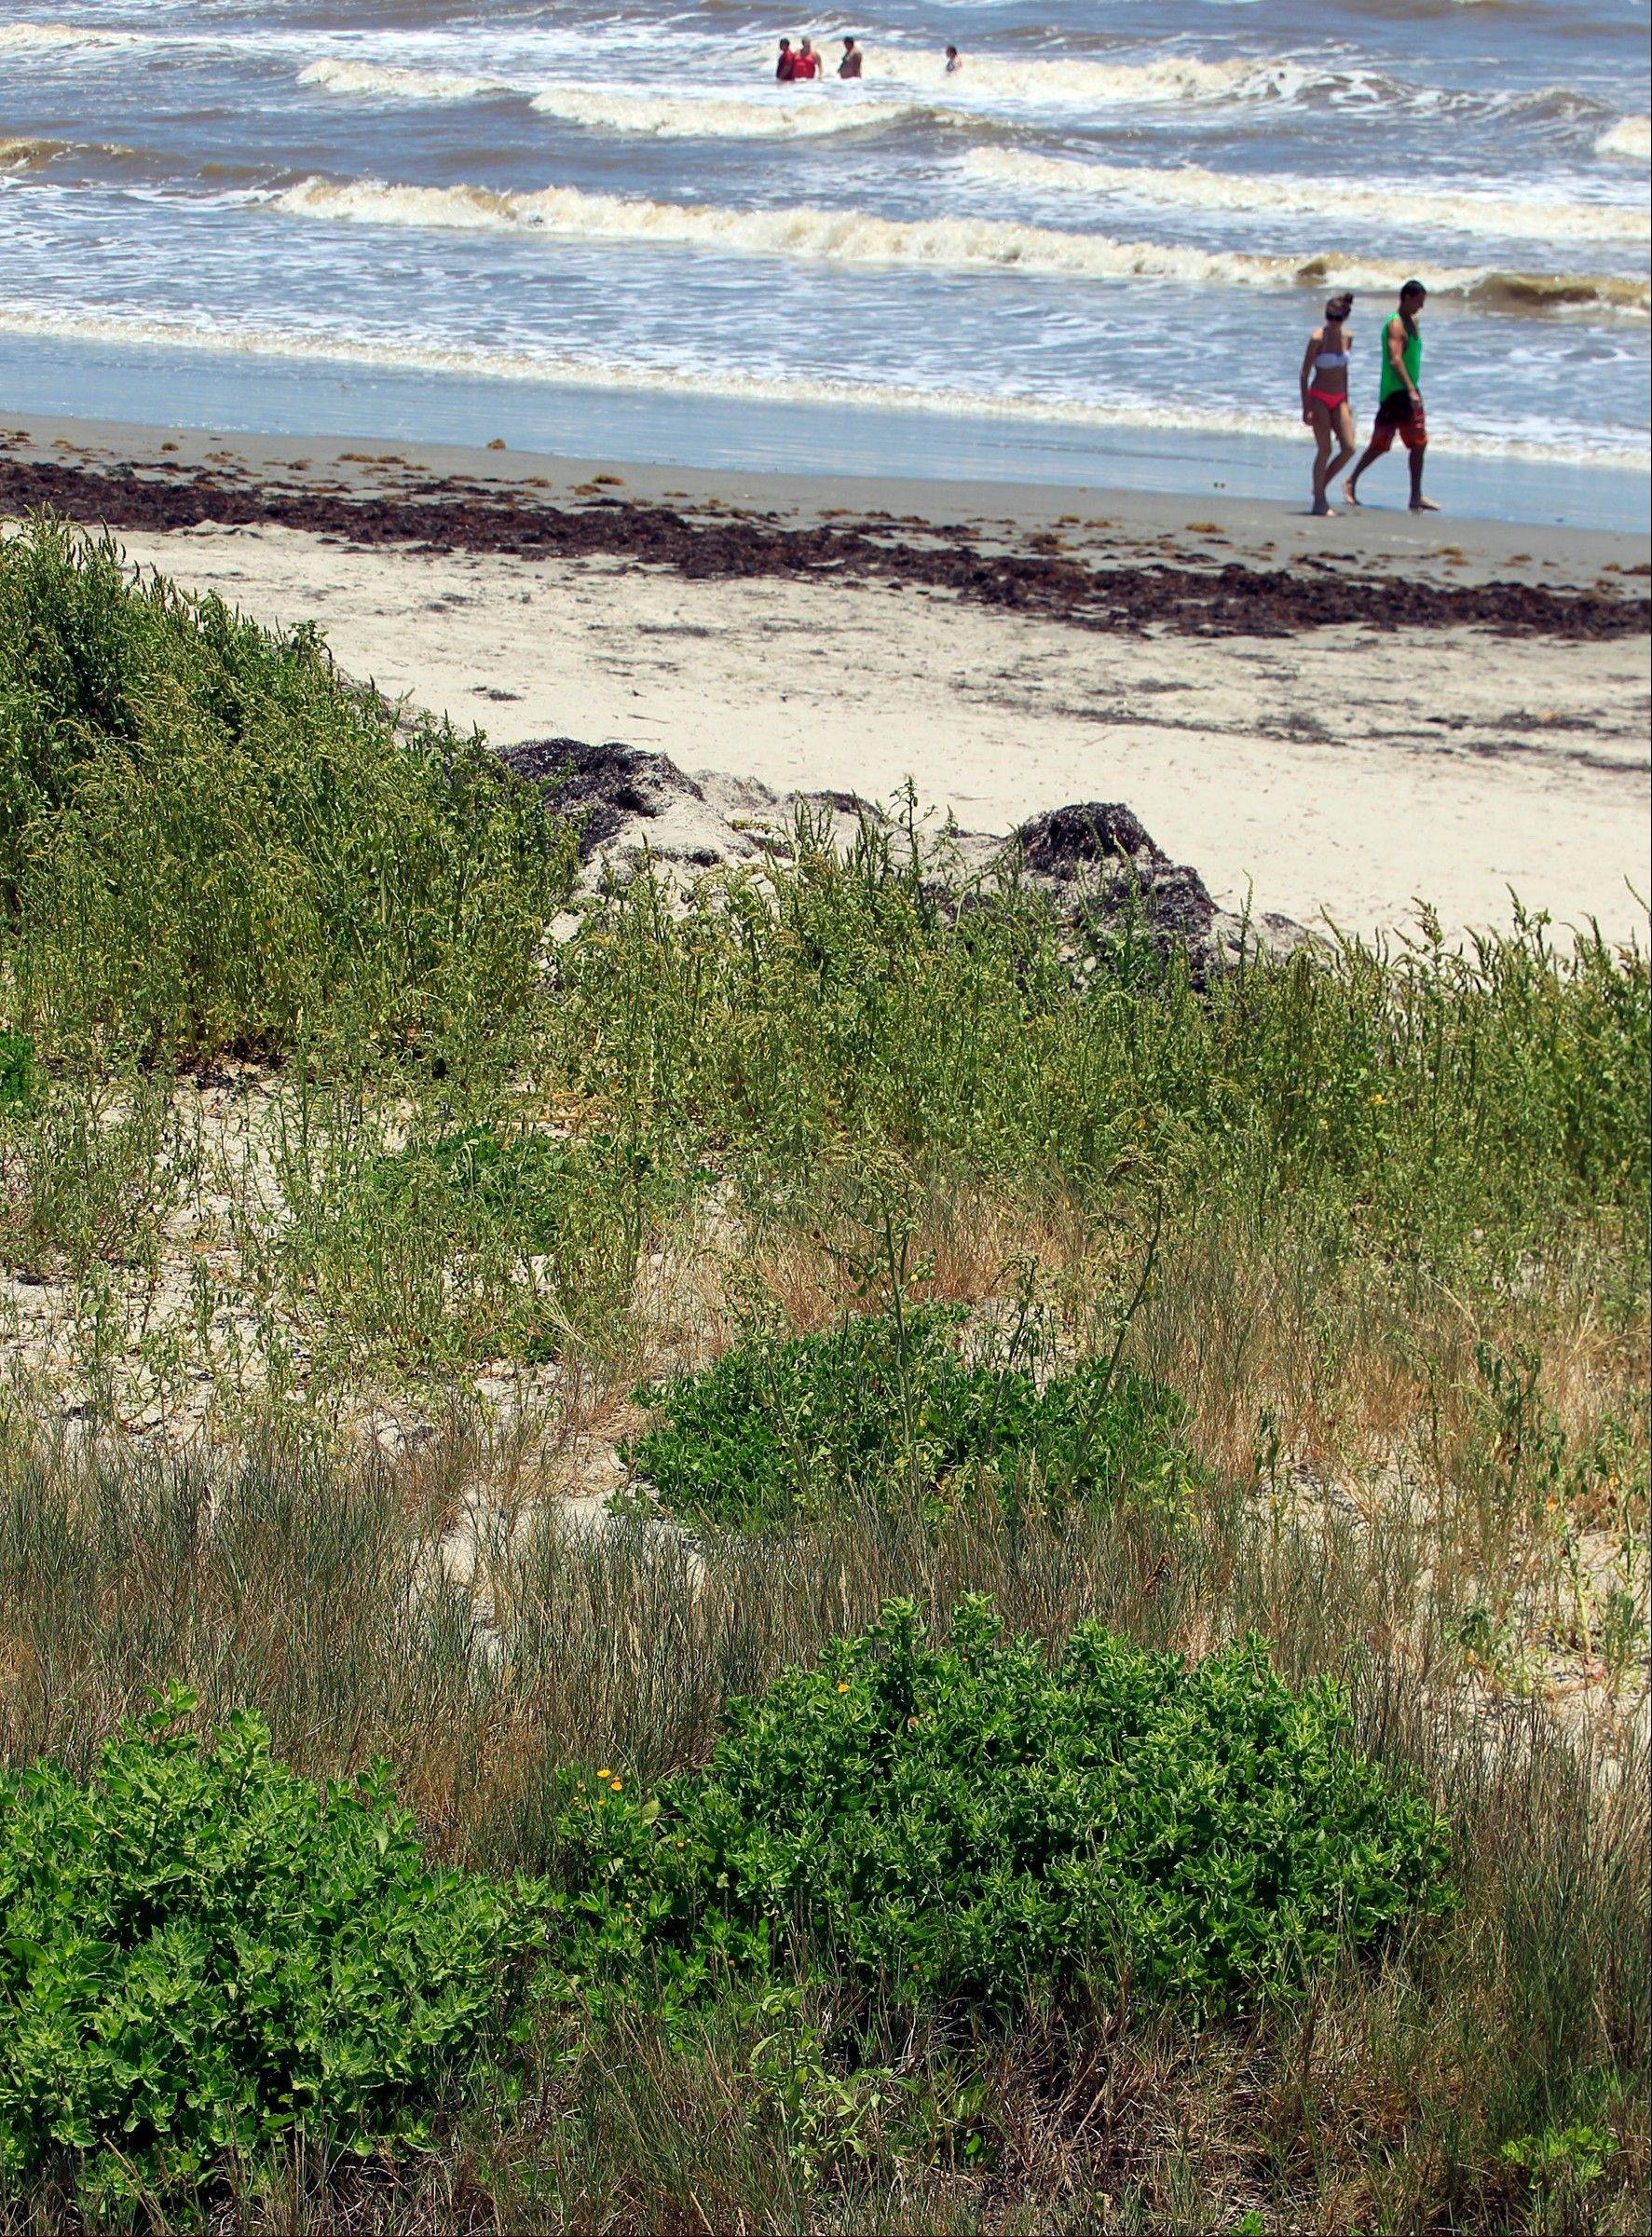 Beachgoers walk along the beach near 17th Street in Galveston, Texas, where dunes built from scraping seaweed off the beach support a variety of vegetation. The Park Board of Trustees voted unanimously to support projects that will create ìseaweed-enhanced sand dunesî on the island.